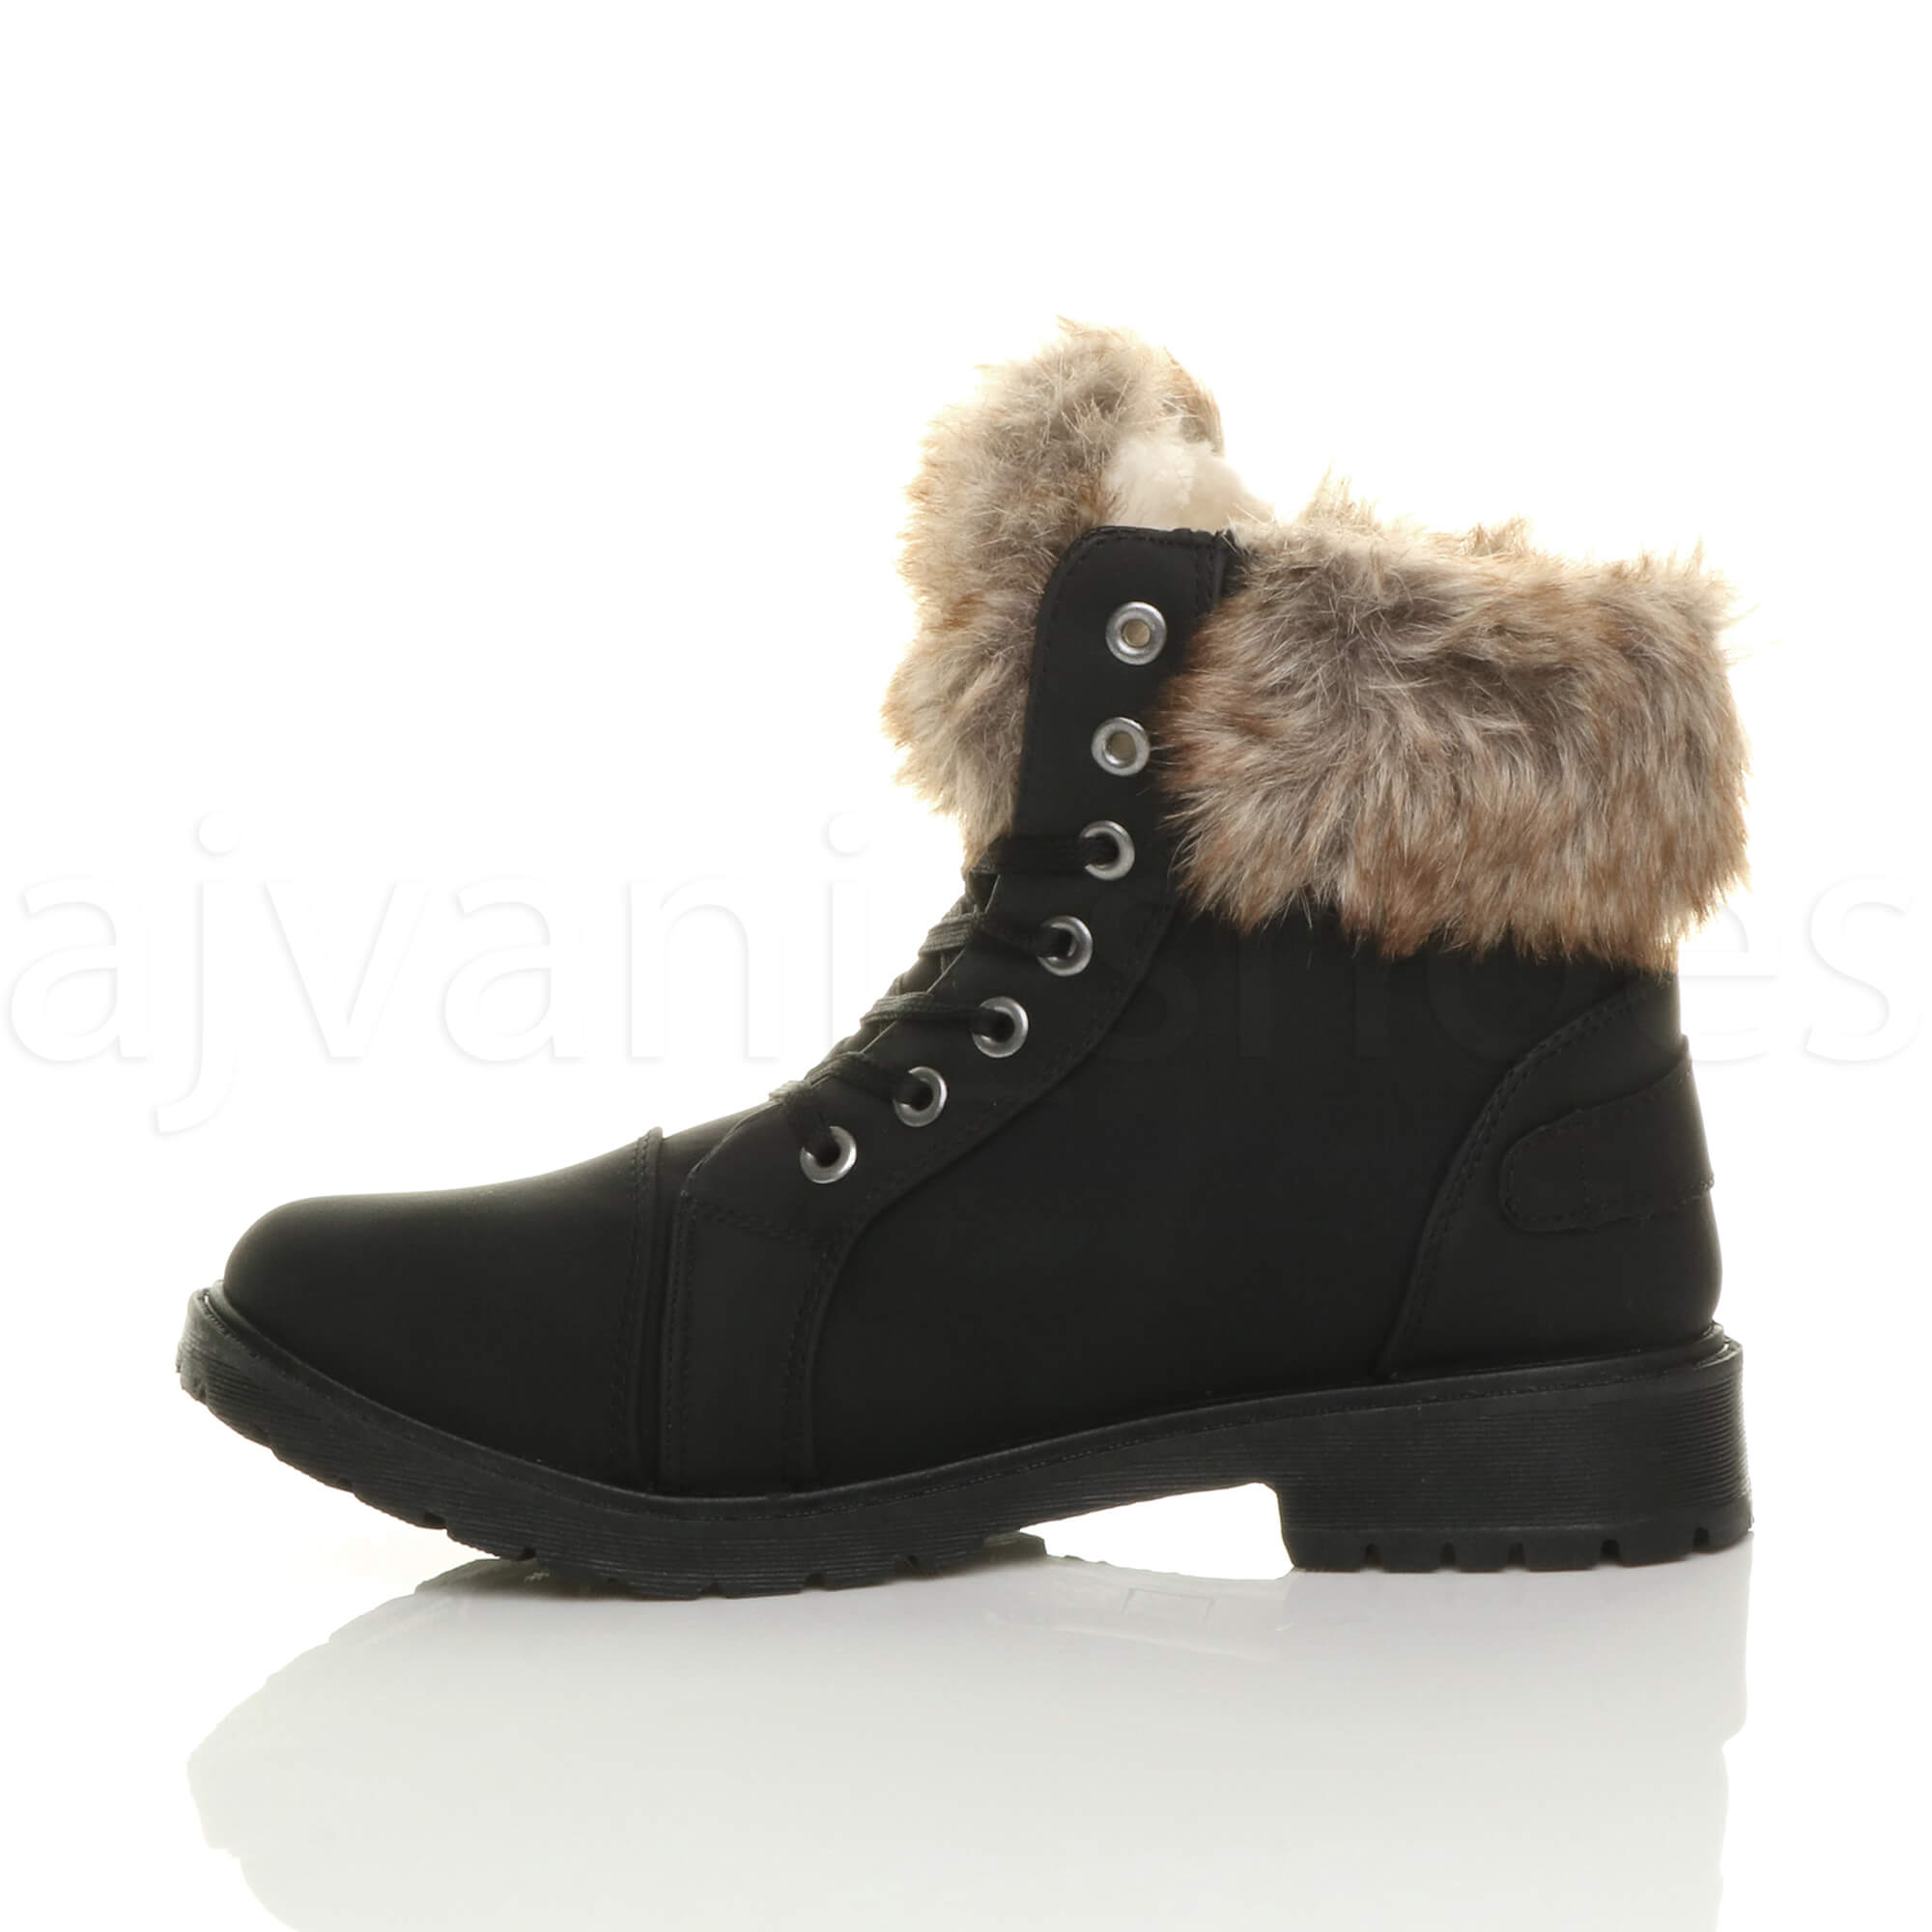 WOMENS LADIES FUR LINING CUFF FLAT WALKING LACE UP BIKER ANKLE SHOES BOOTS SIZE